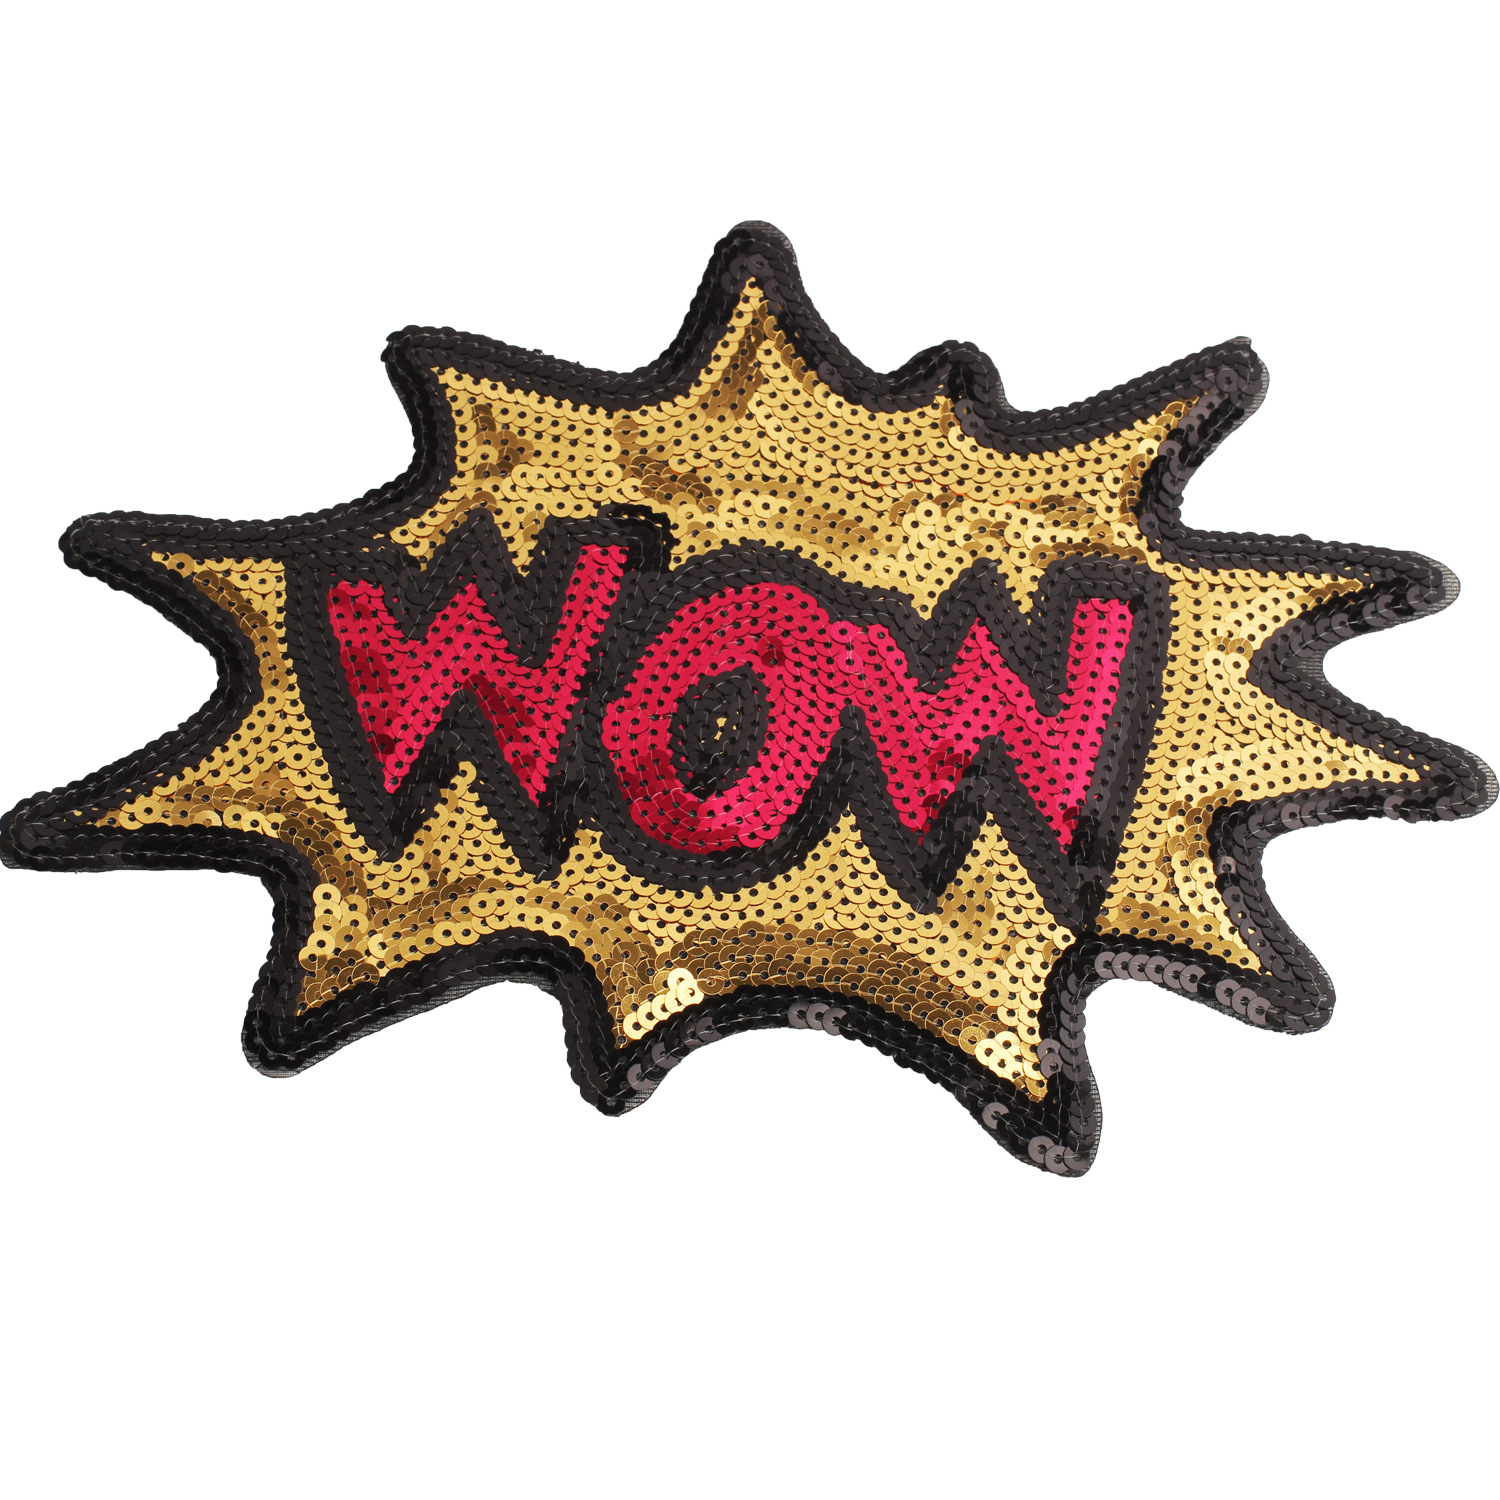 New Cartoon Large Sequin Letters WOW Embroidery Cloth Patch Clothing Accessories Bag Decoration